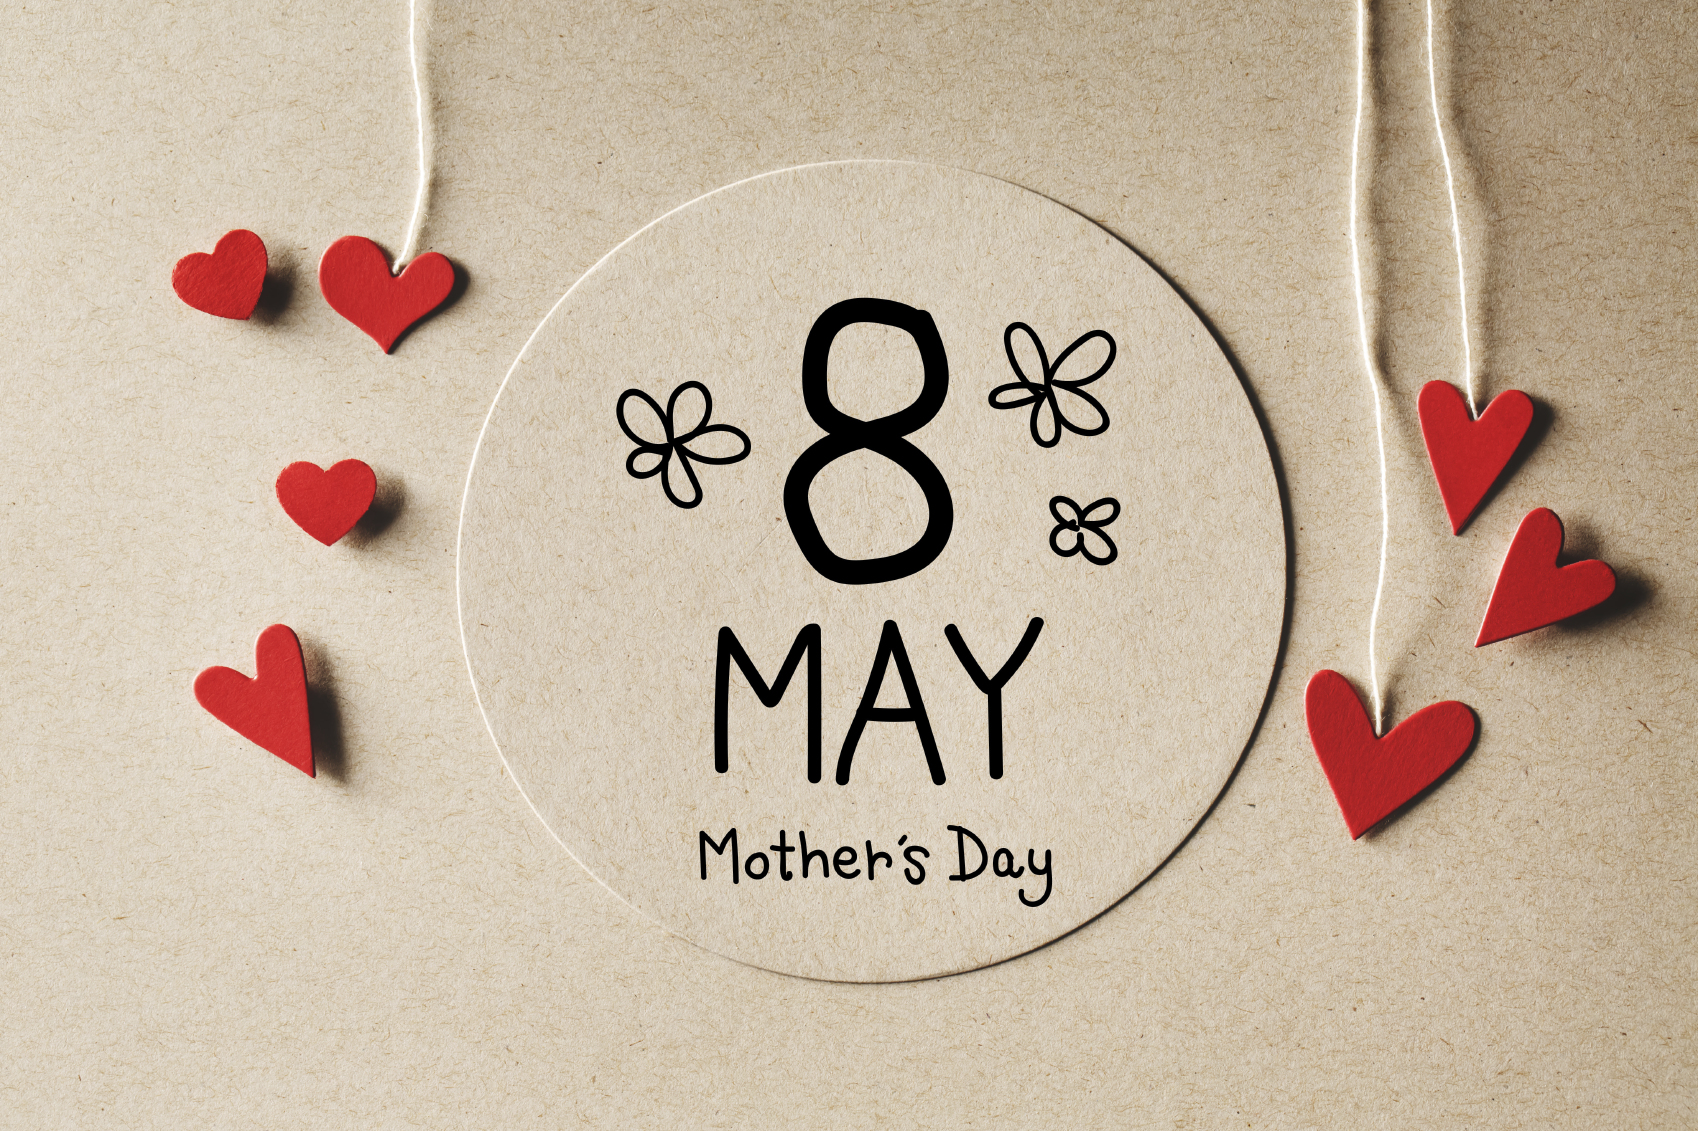 5 Ways to Make Mother's Day Special for Mom